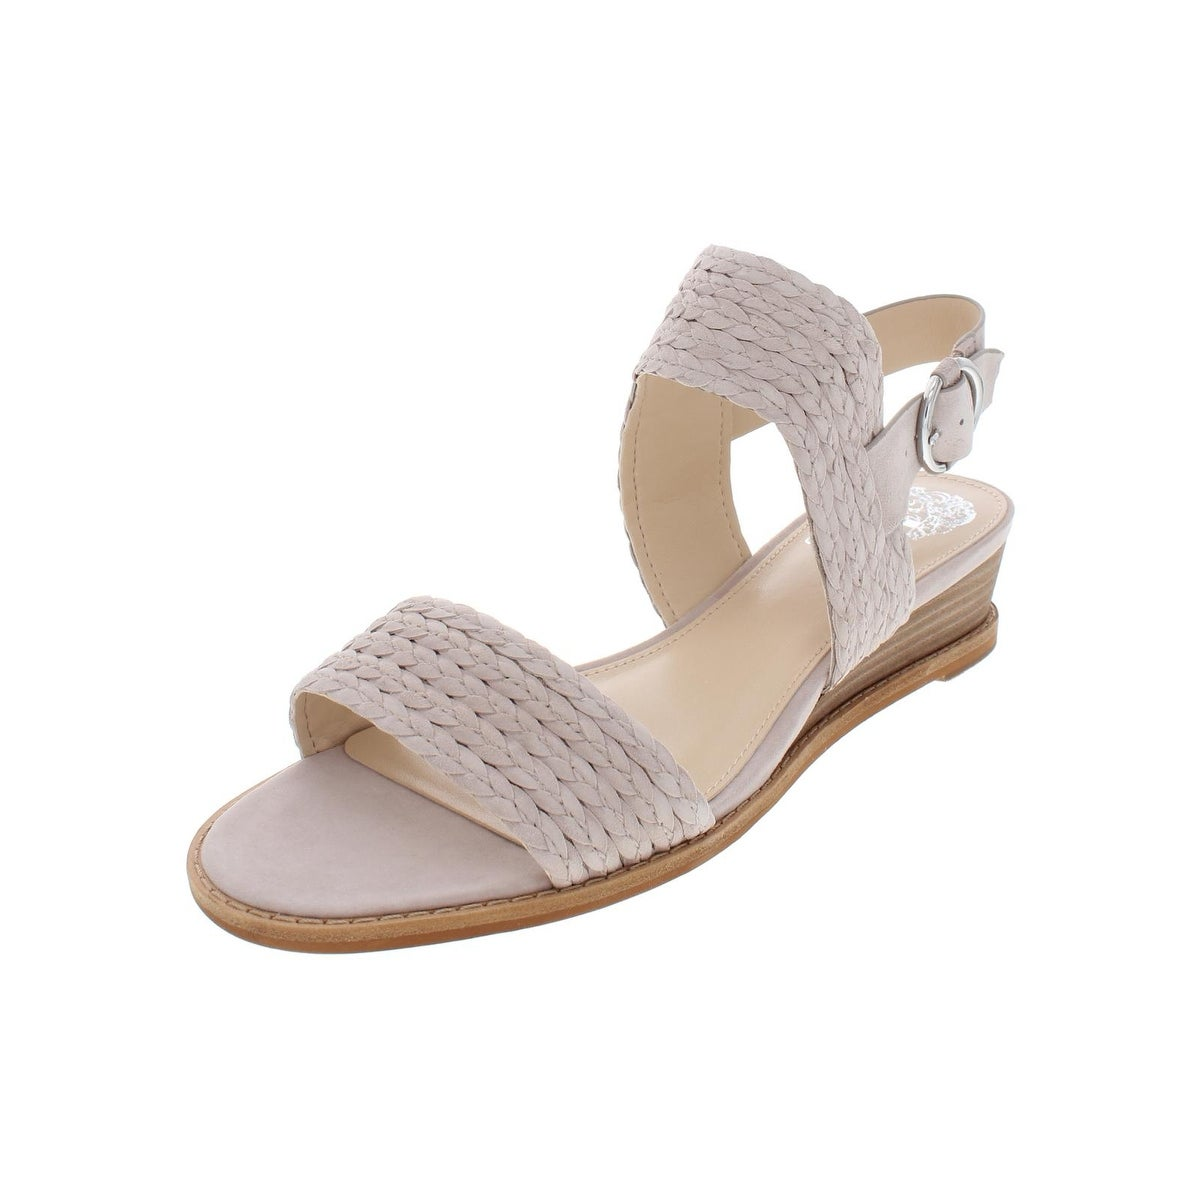 801b80bccb35 New Products - Vince Camuto Women s Shoes